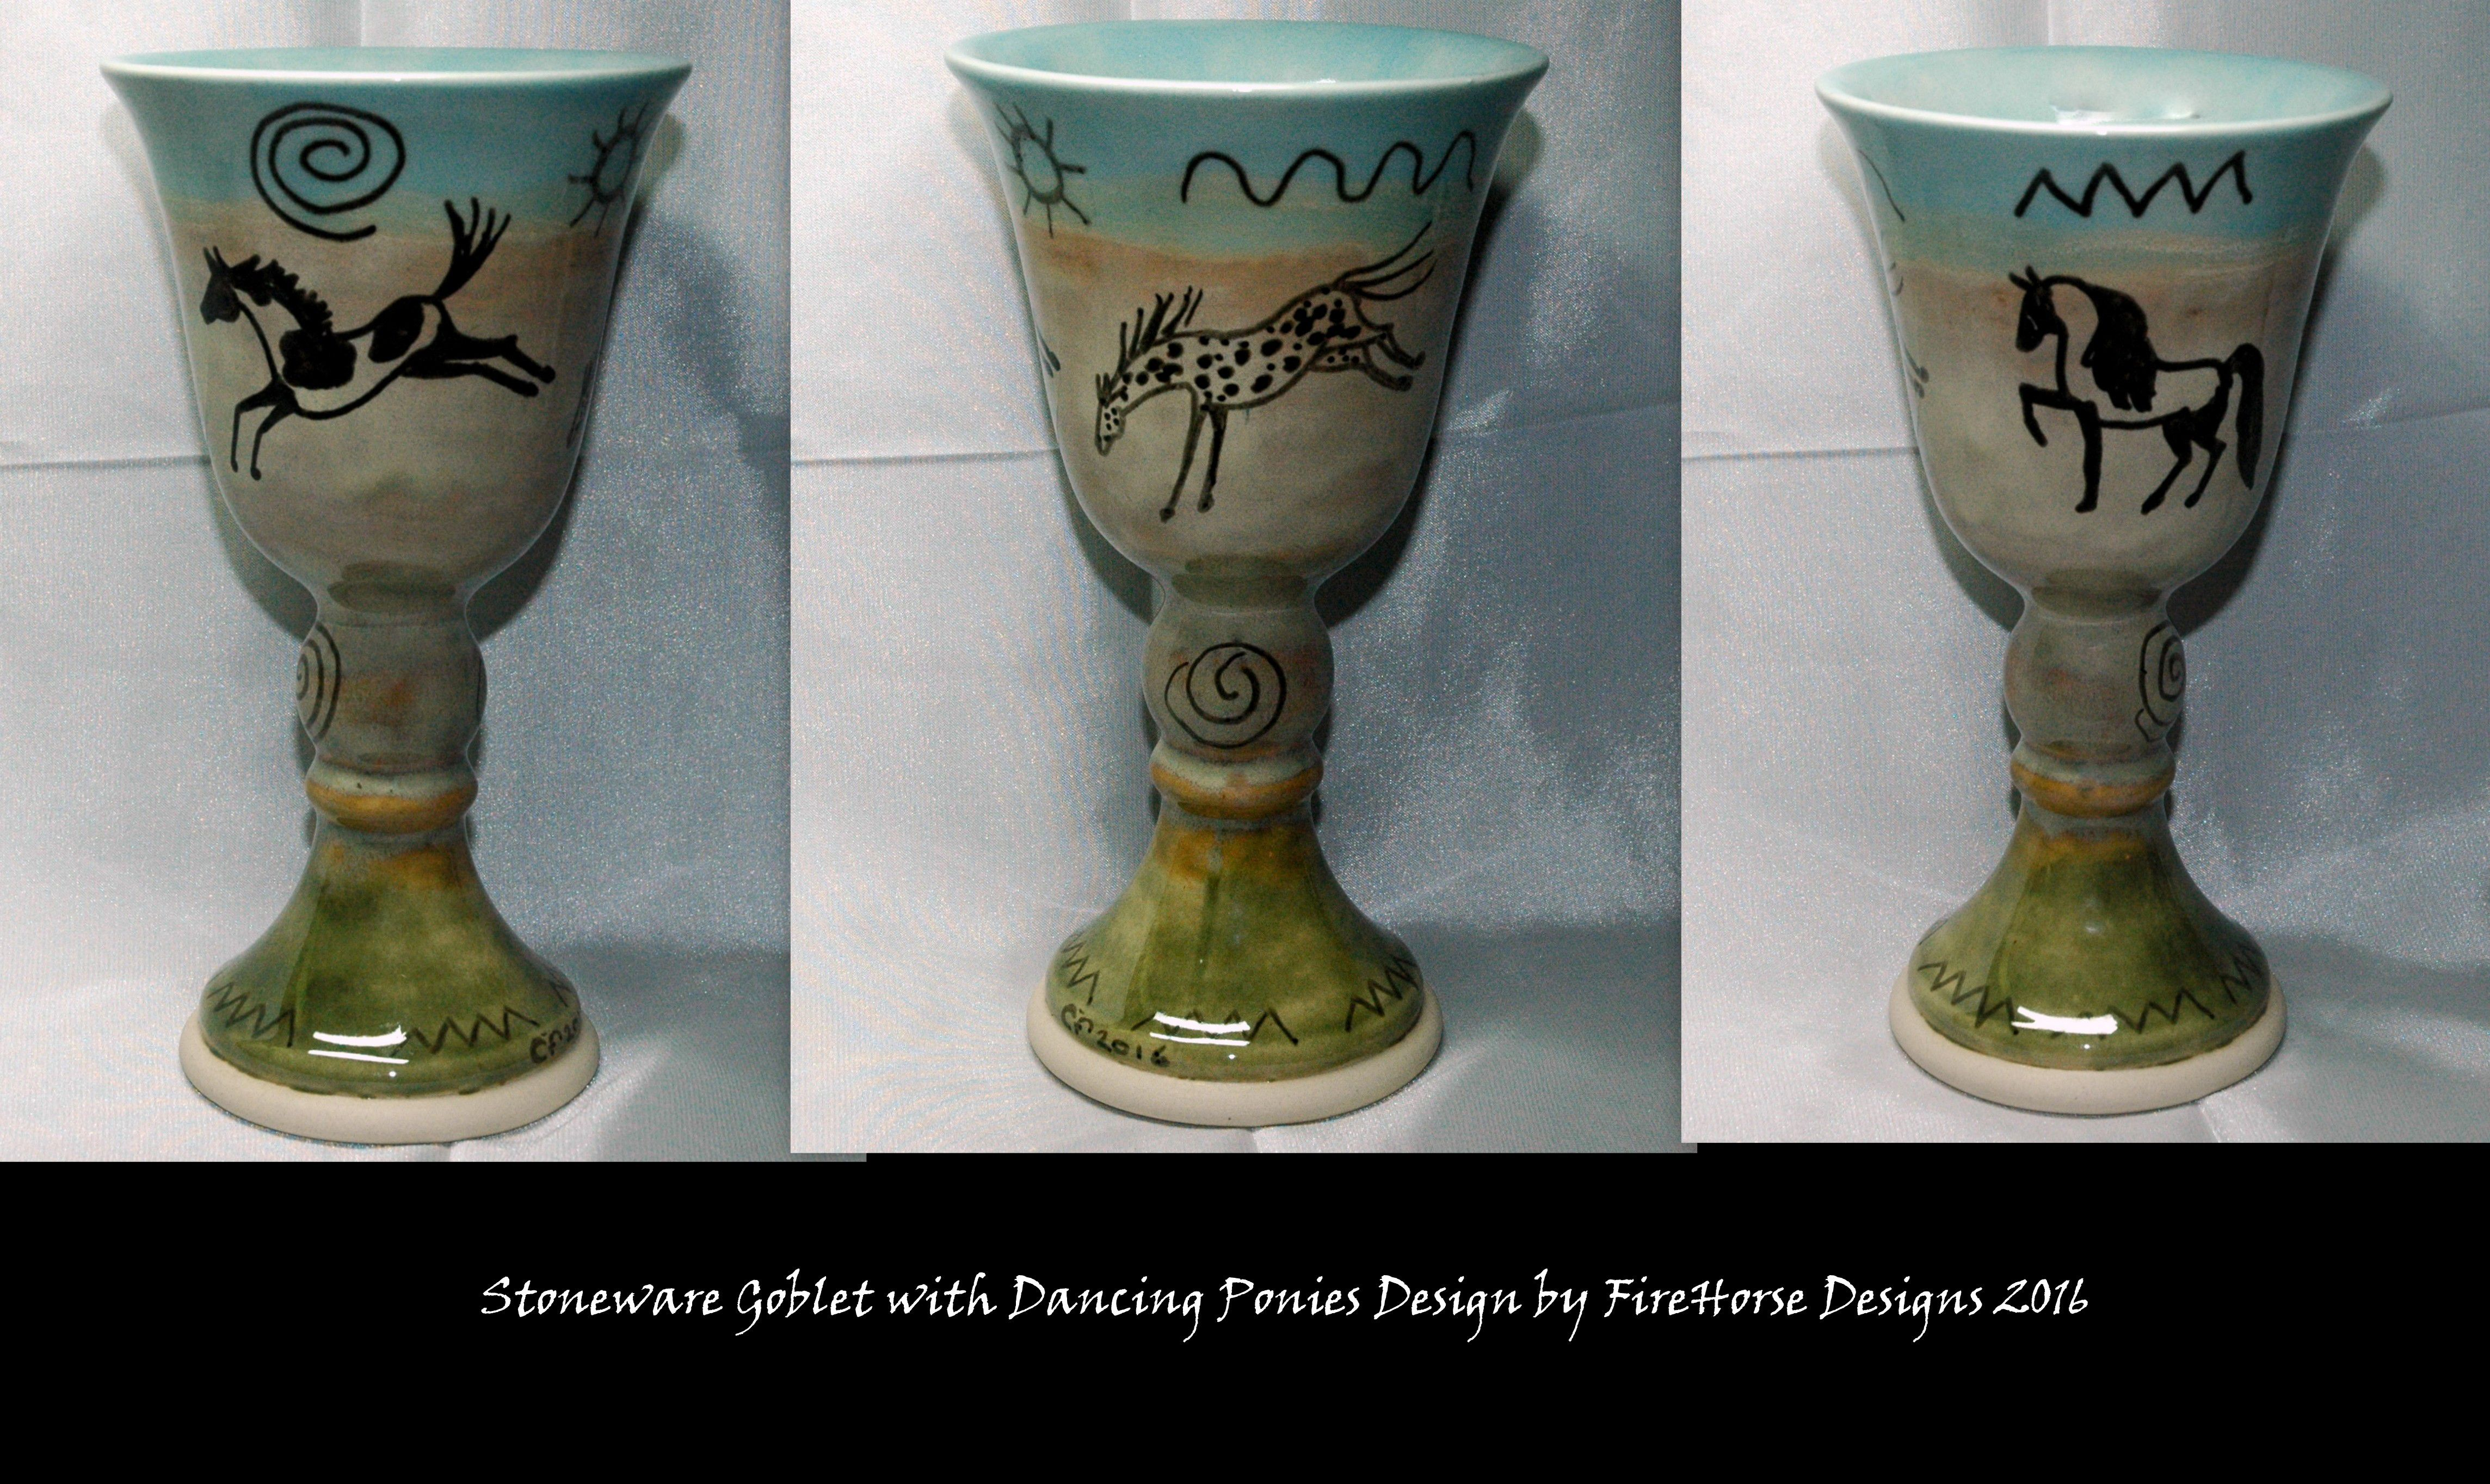 Stoneware goblet with dancing ponies design by FireHorse Designs